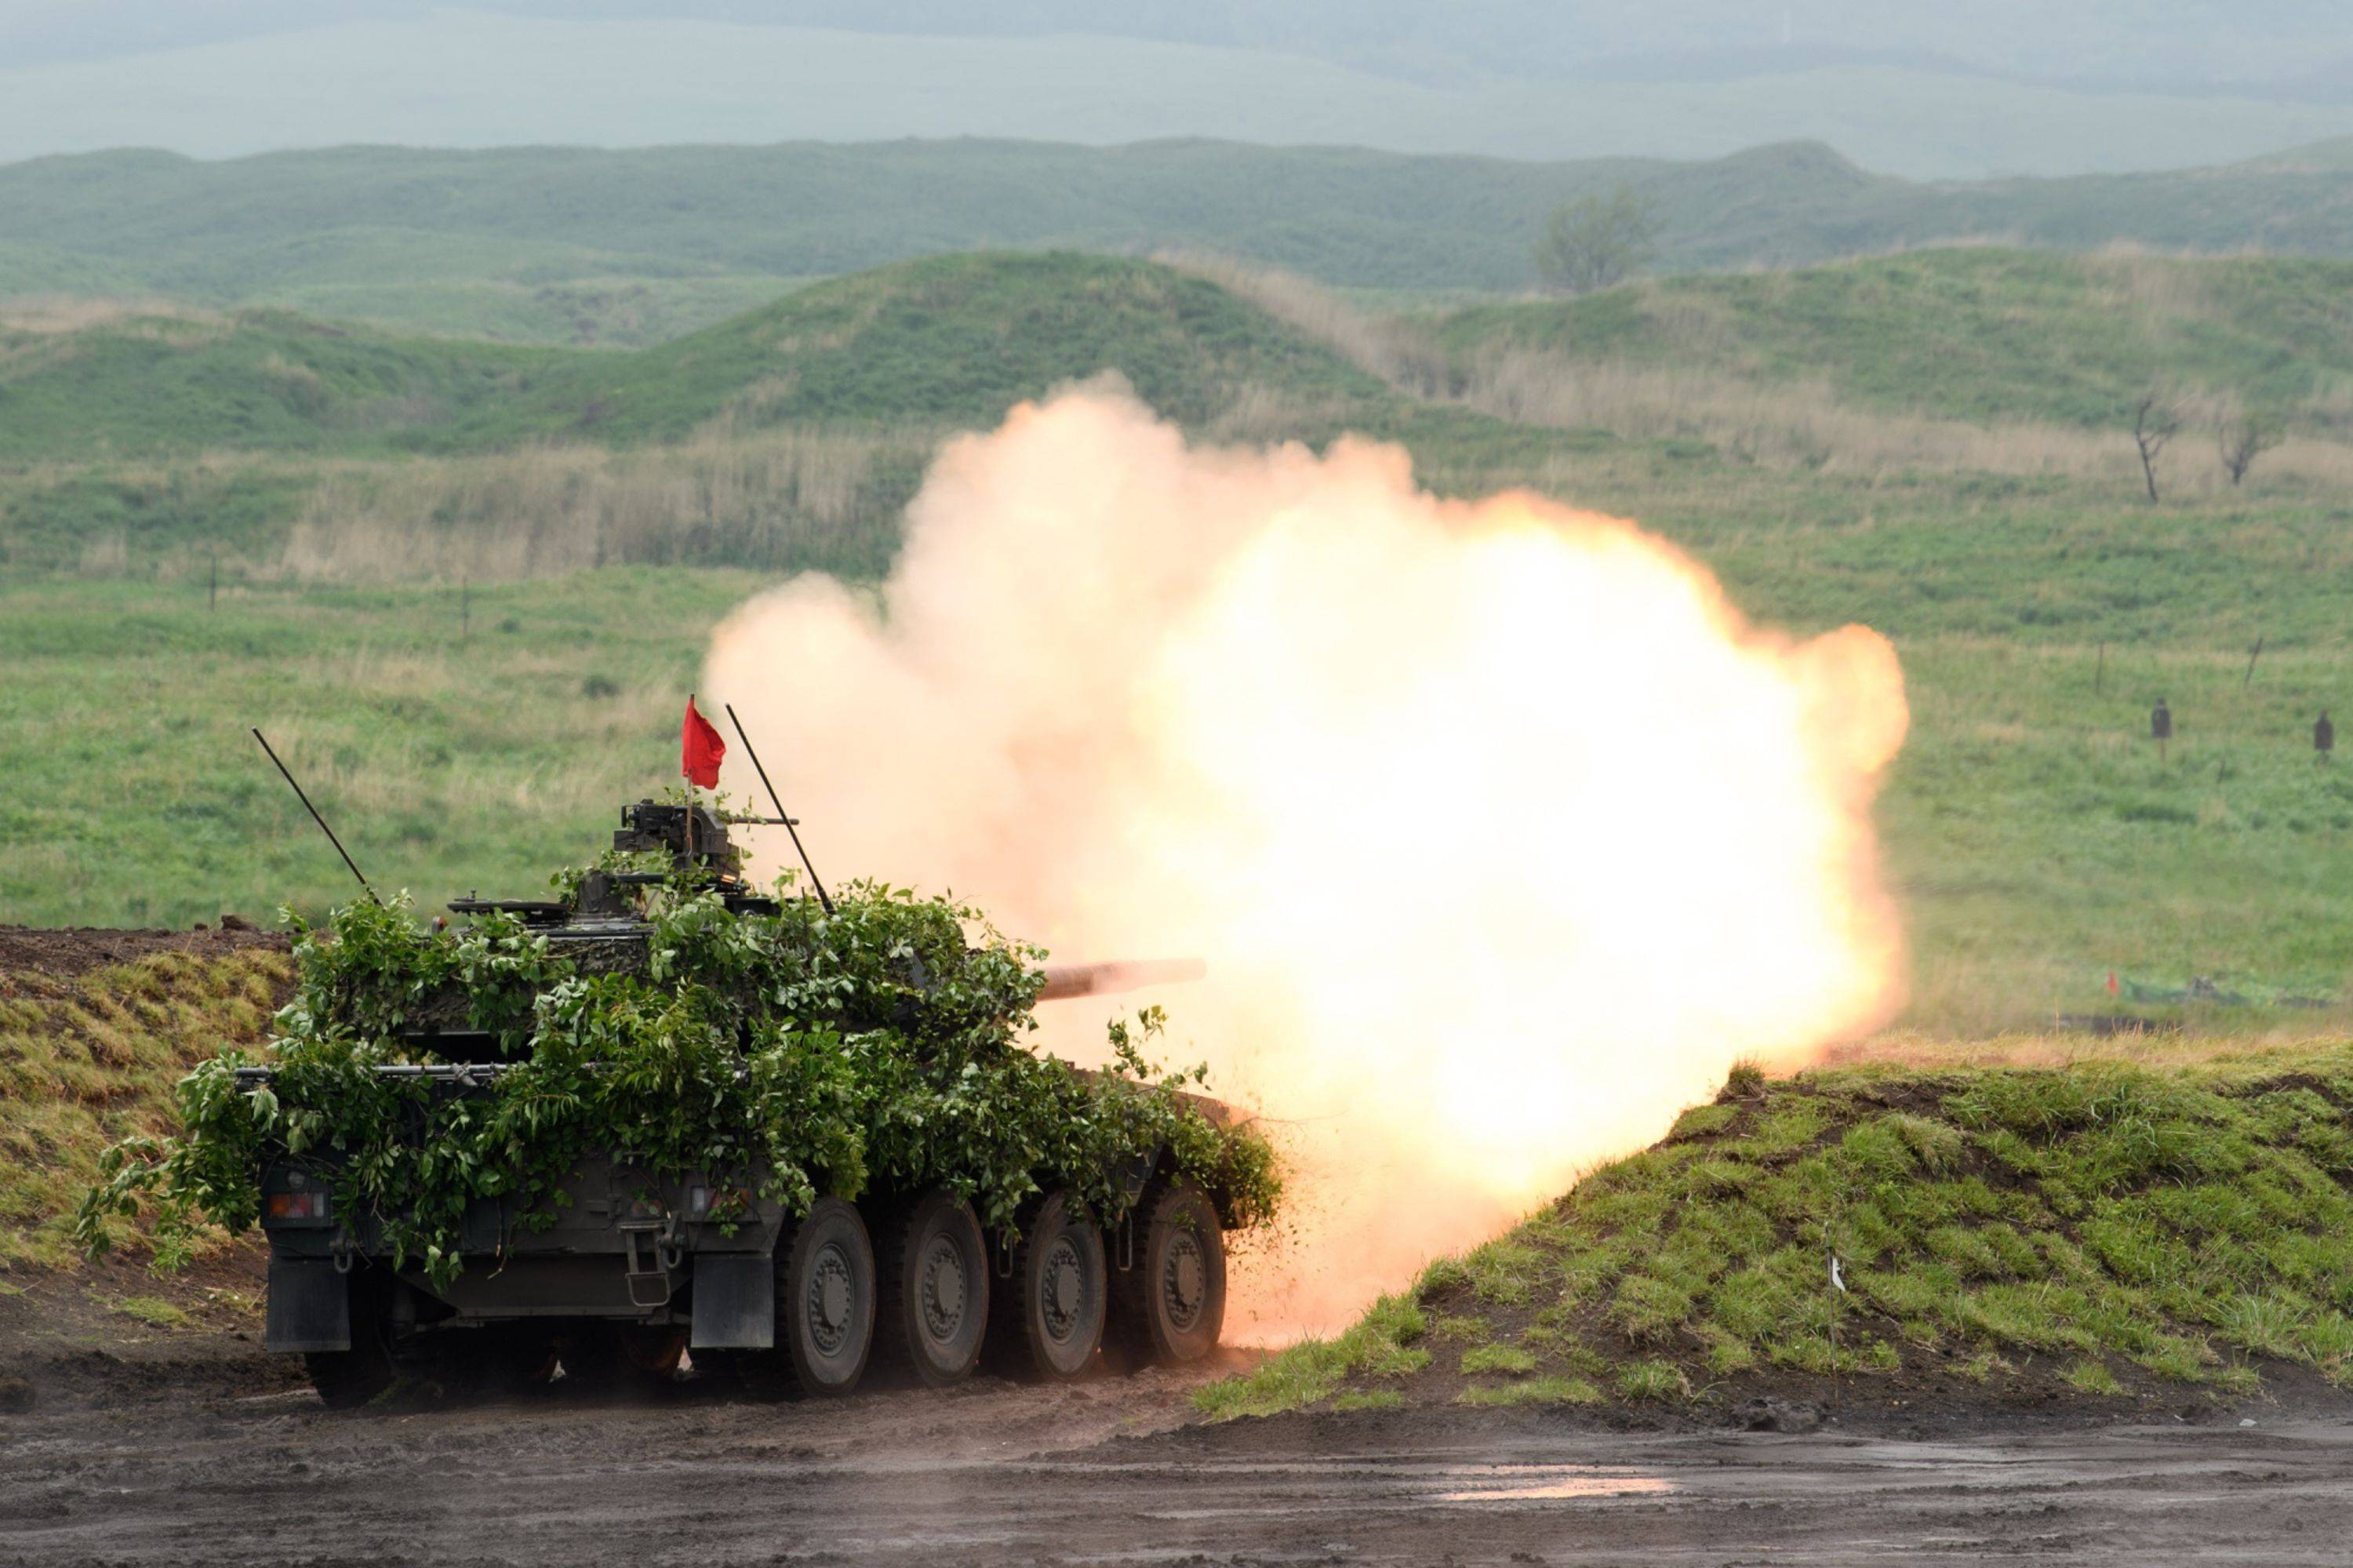 A Ground Self-Defense Force tank takes part in a live-fire training exercise in Gotemba, Shizuoka Prefecture, on May 22. | BLOOMBERG